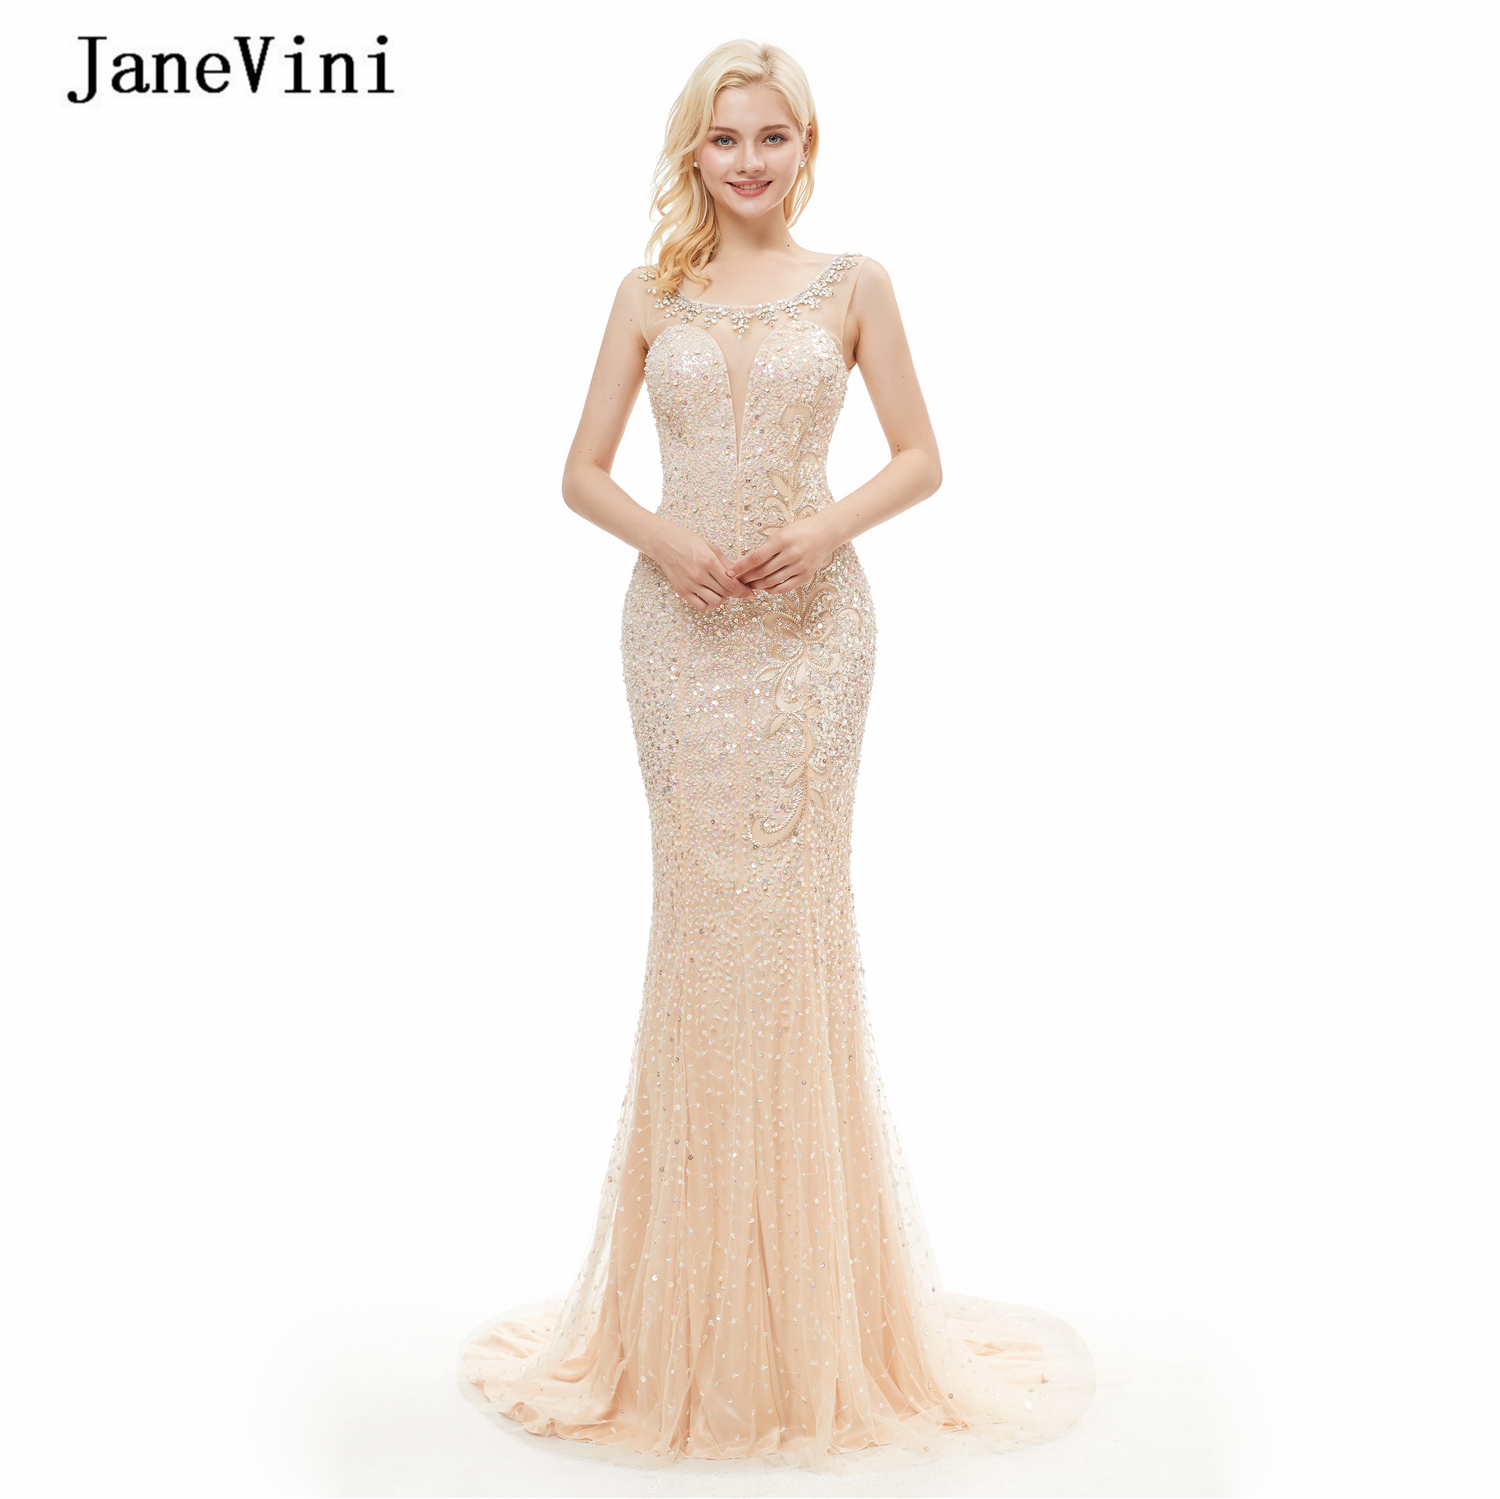 JaneVini Luxury Crystal Mermaid Dubai Long Evening Dresses 2020 Scoop Neck Full Beaded Sleeveless Tulle Arabic Sexy Evening Gown